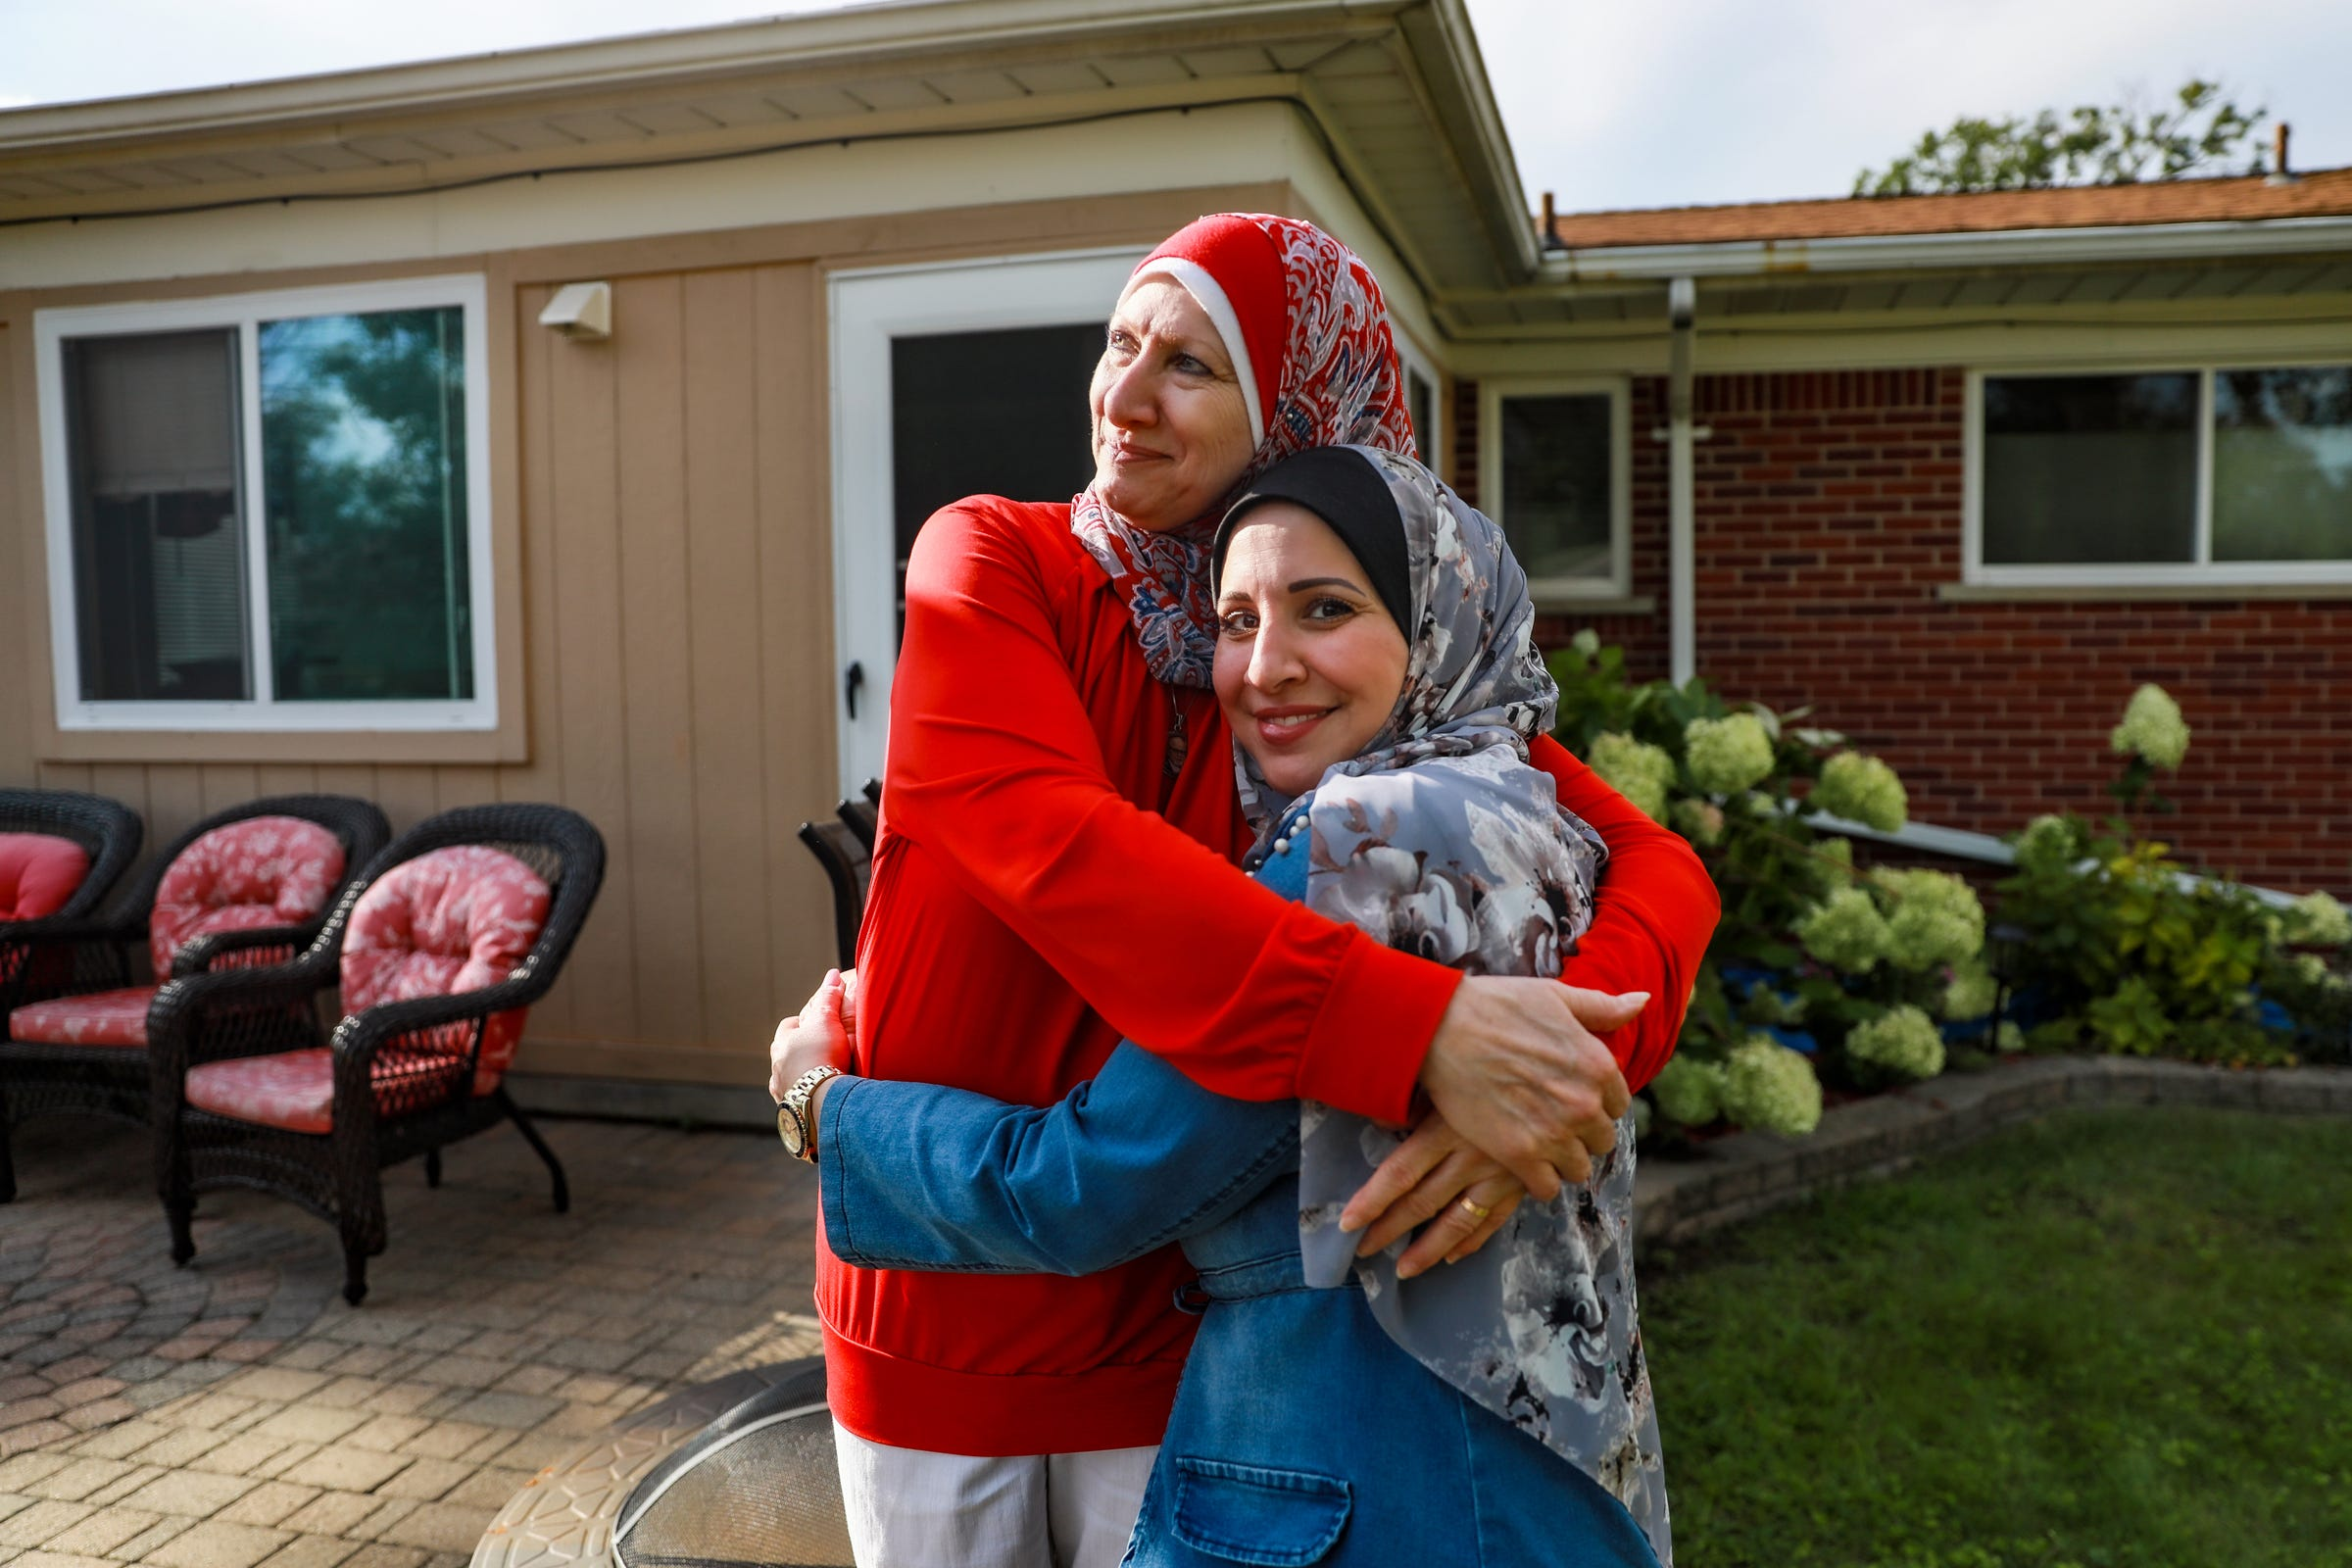 """Community liaison for Dearborn Public Schools Lila Amen, 66, and her daughter, international and diplomatic affairs consultant Suehaila Amen, 42, both of Dearborn Heights, and their family were featured in TLC's """"All-American Muslim."""" Amen says the show opened people's eyes to see Muslims as human beings and finds it exhausting to have to explain her faith every time something happens connected to a Muslim. """"These people (terrorists) do not represent my faith, they don't represent me,"""" said Amen, """"They don't represent my community. Why should I have to continue apologizing for someone else's actions."""" Suehaila said her community is ostracized and seen as other, which is why she helped form Building Respect In Diverse Groups to Enhance Sensitivity (BRIDGES), a successful partnership between federal law enforcement agencies and Arab American and Middle Eastern leadership in metro Detroit that formed right after Sept. 11, 2001."""